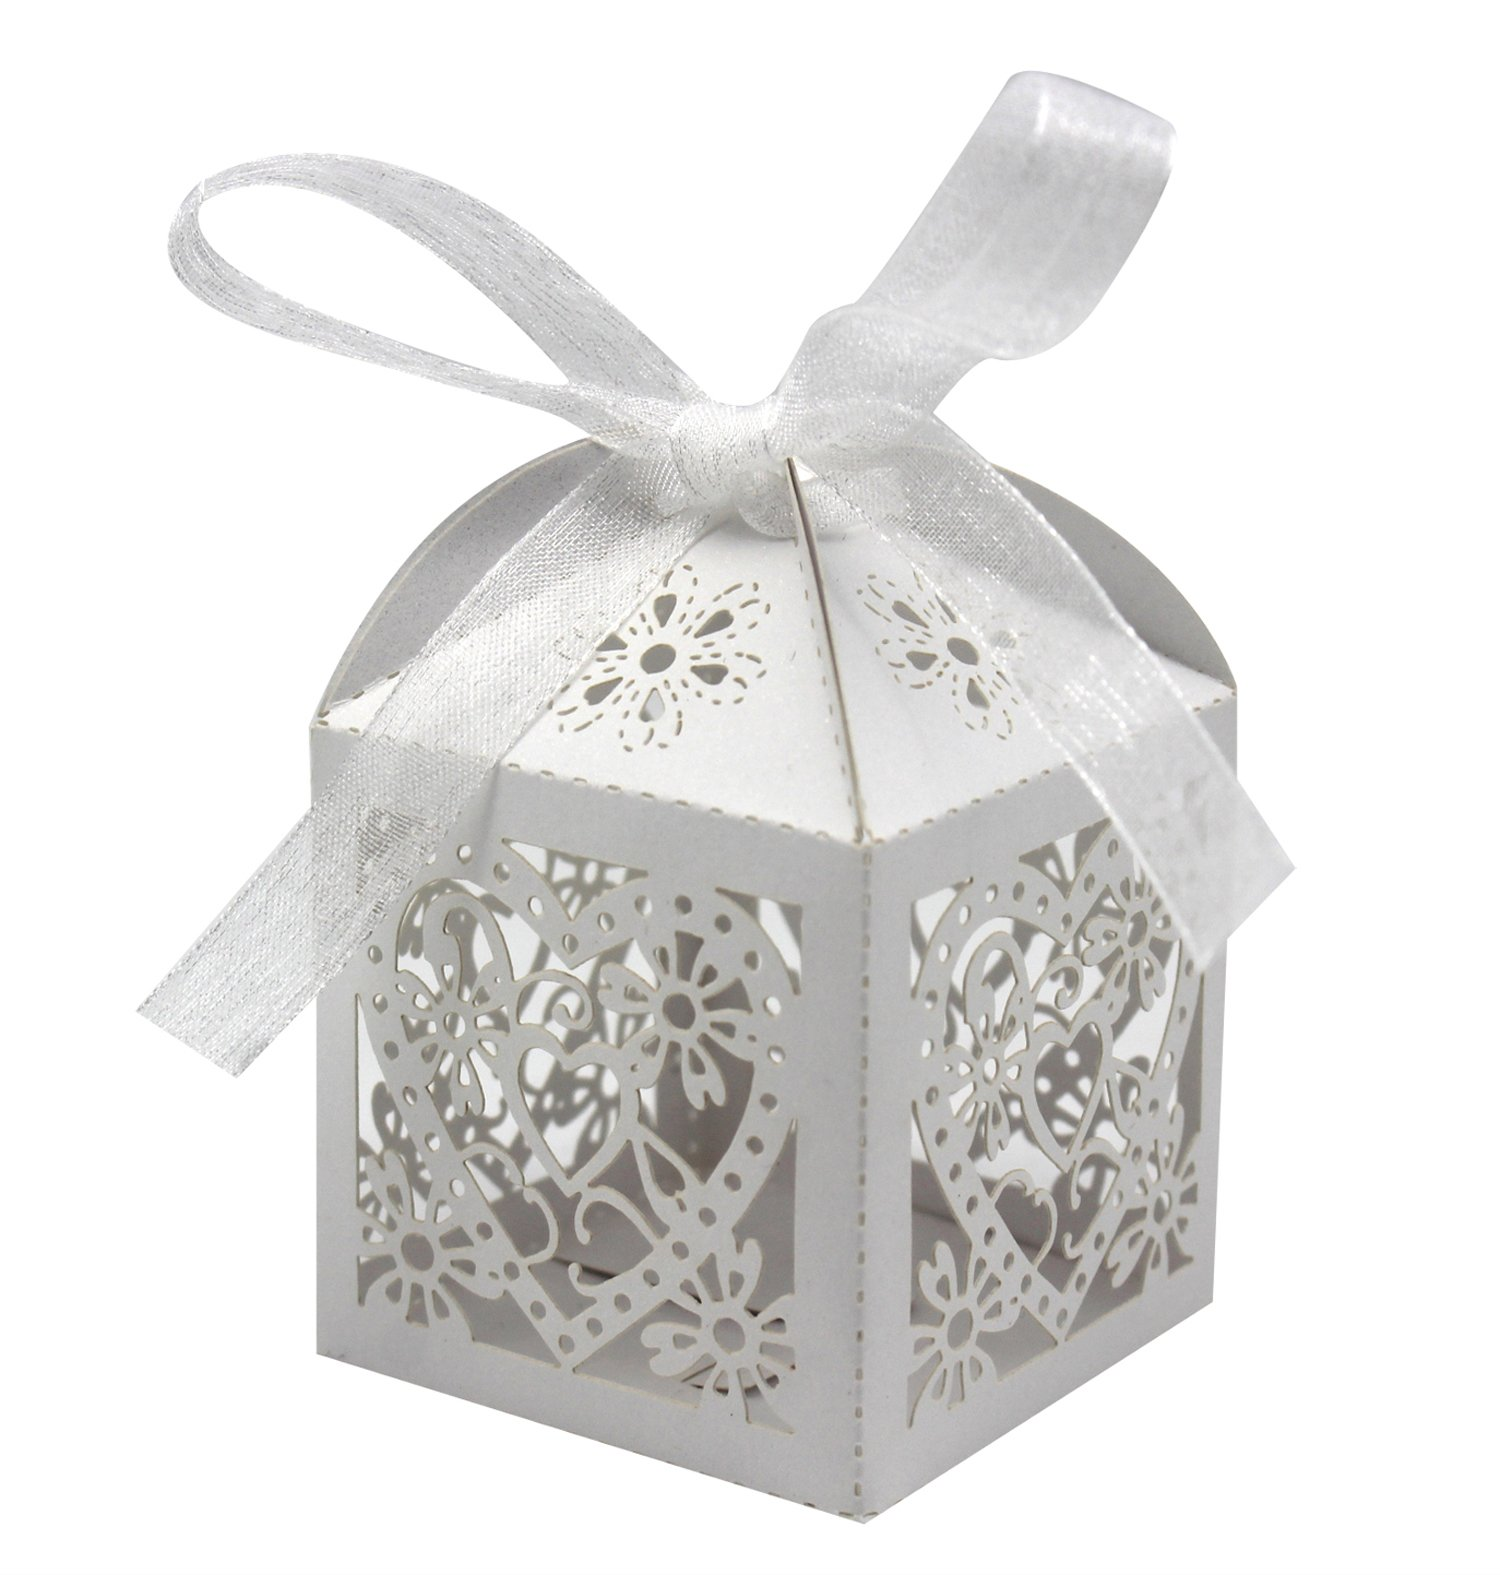 70 Pack Love Heart Laser Cut Wedding Party Favor Box Candy Bag ...